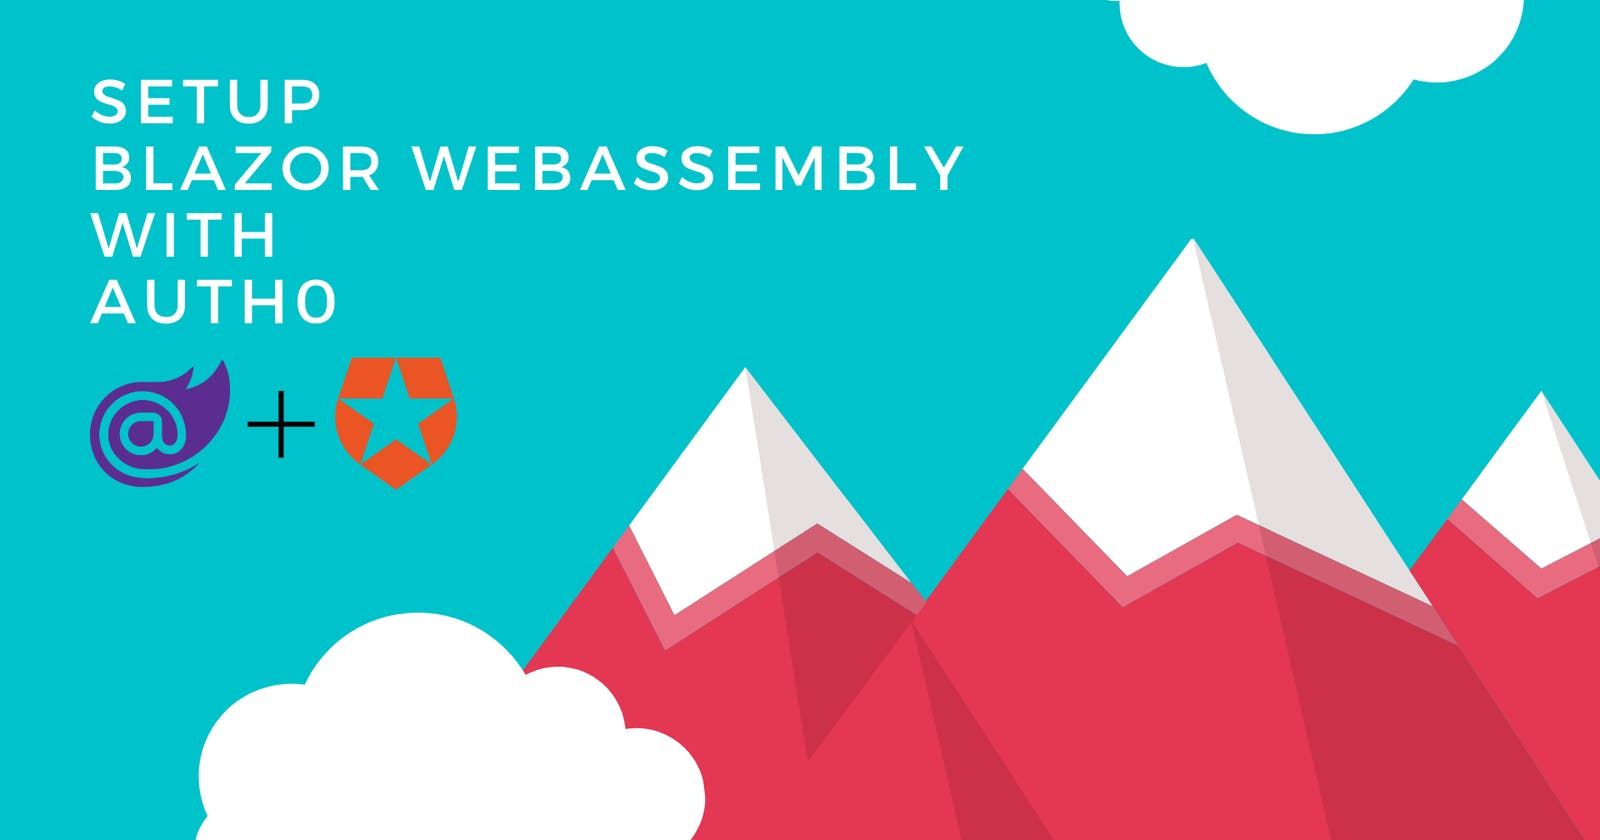 A guide on how to setup Blazor WebAssembly with Auth0